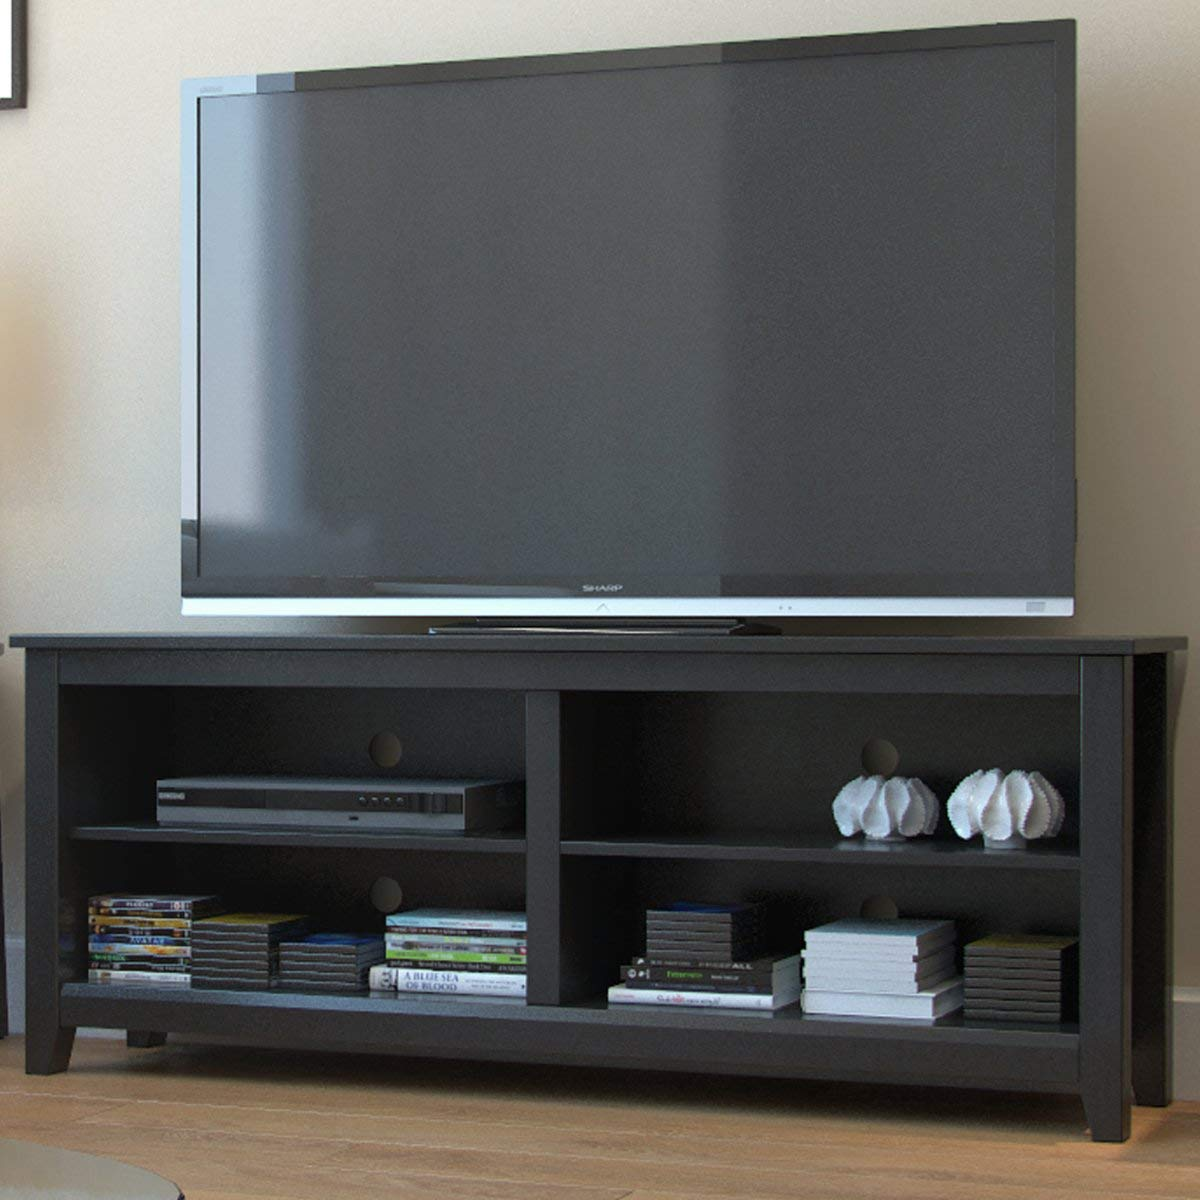 Ryan Rove Mission Wood TV Stand and Console Table - Modern Entertainment Center with Cable Management - Storage Cabinet, Bedroom